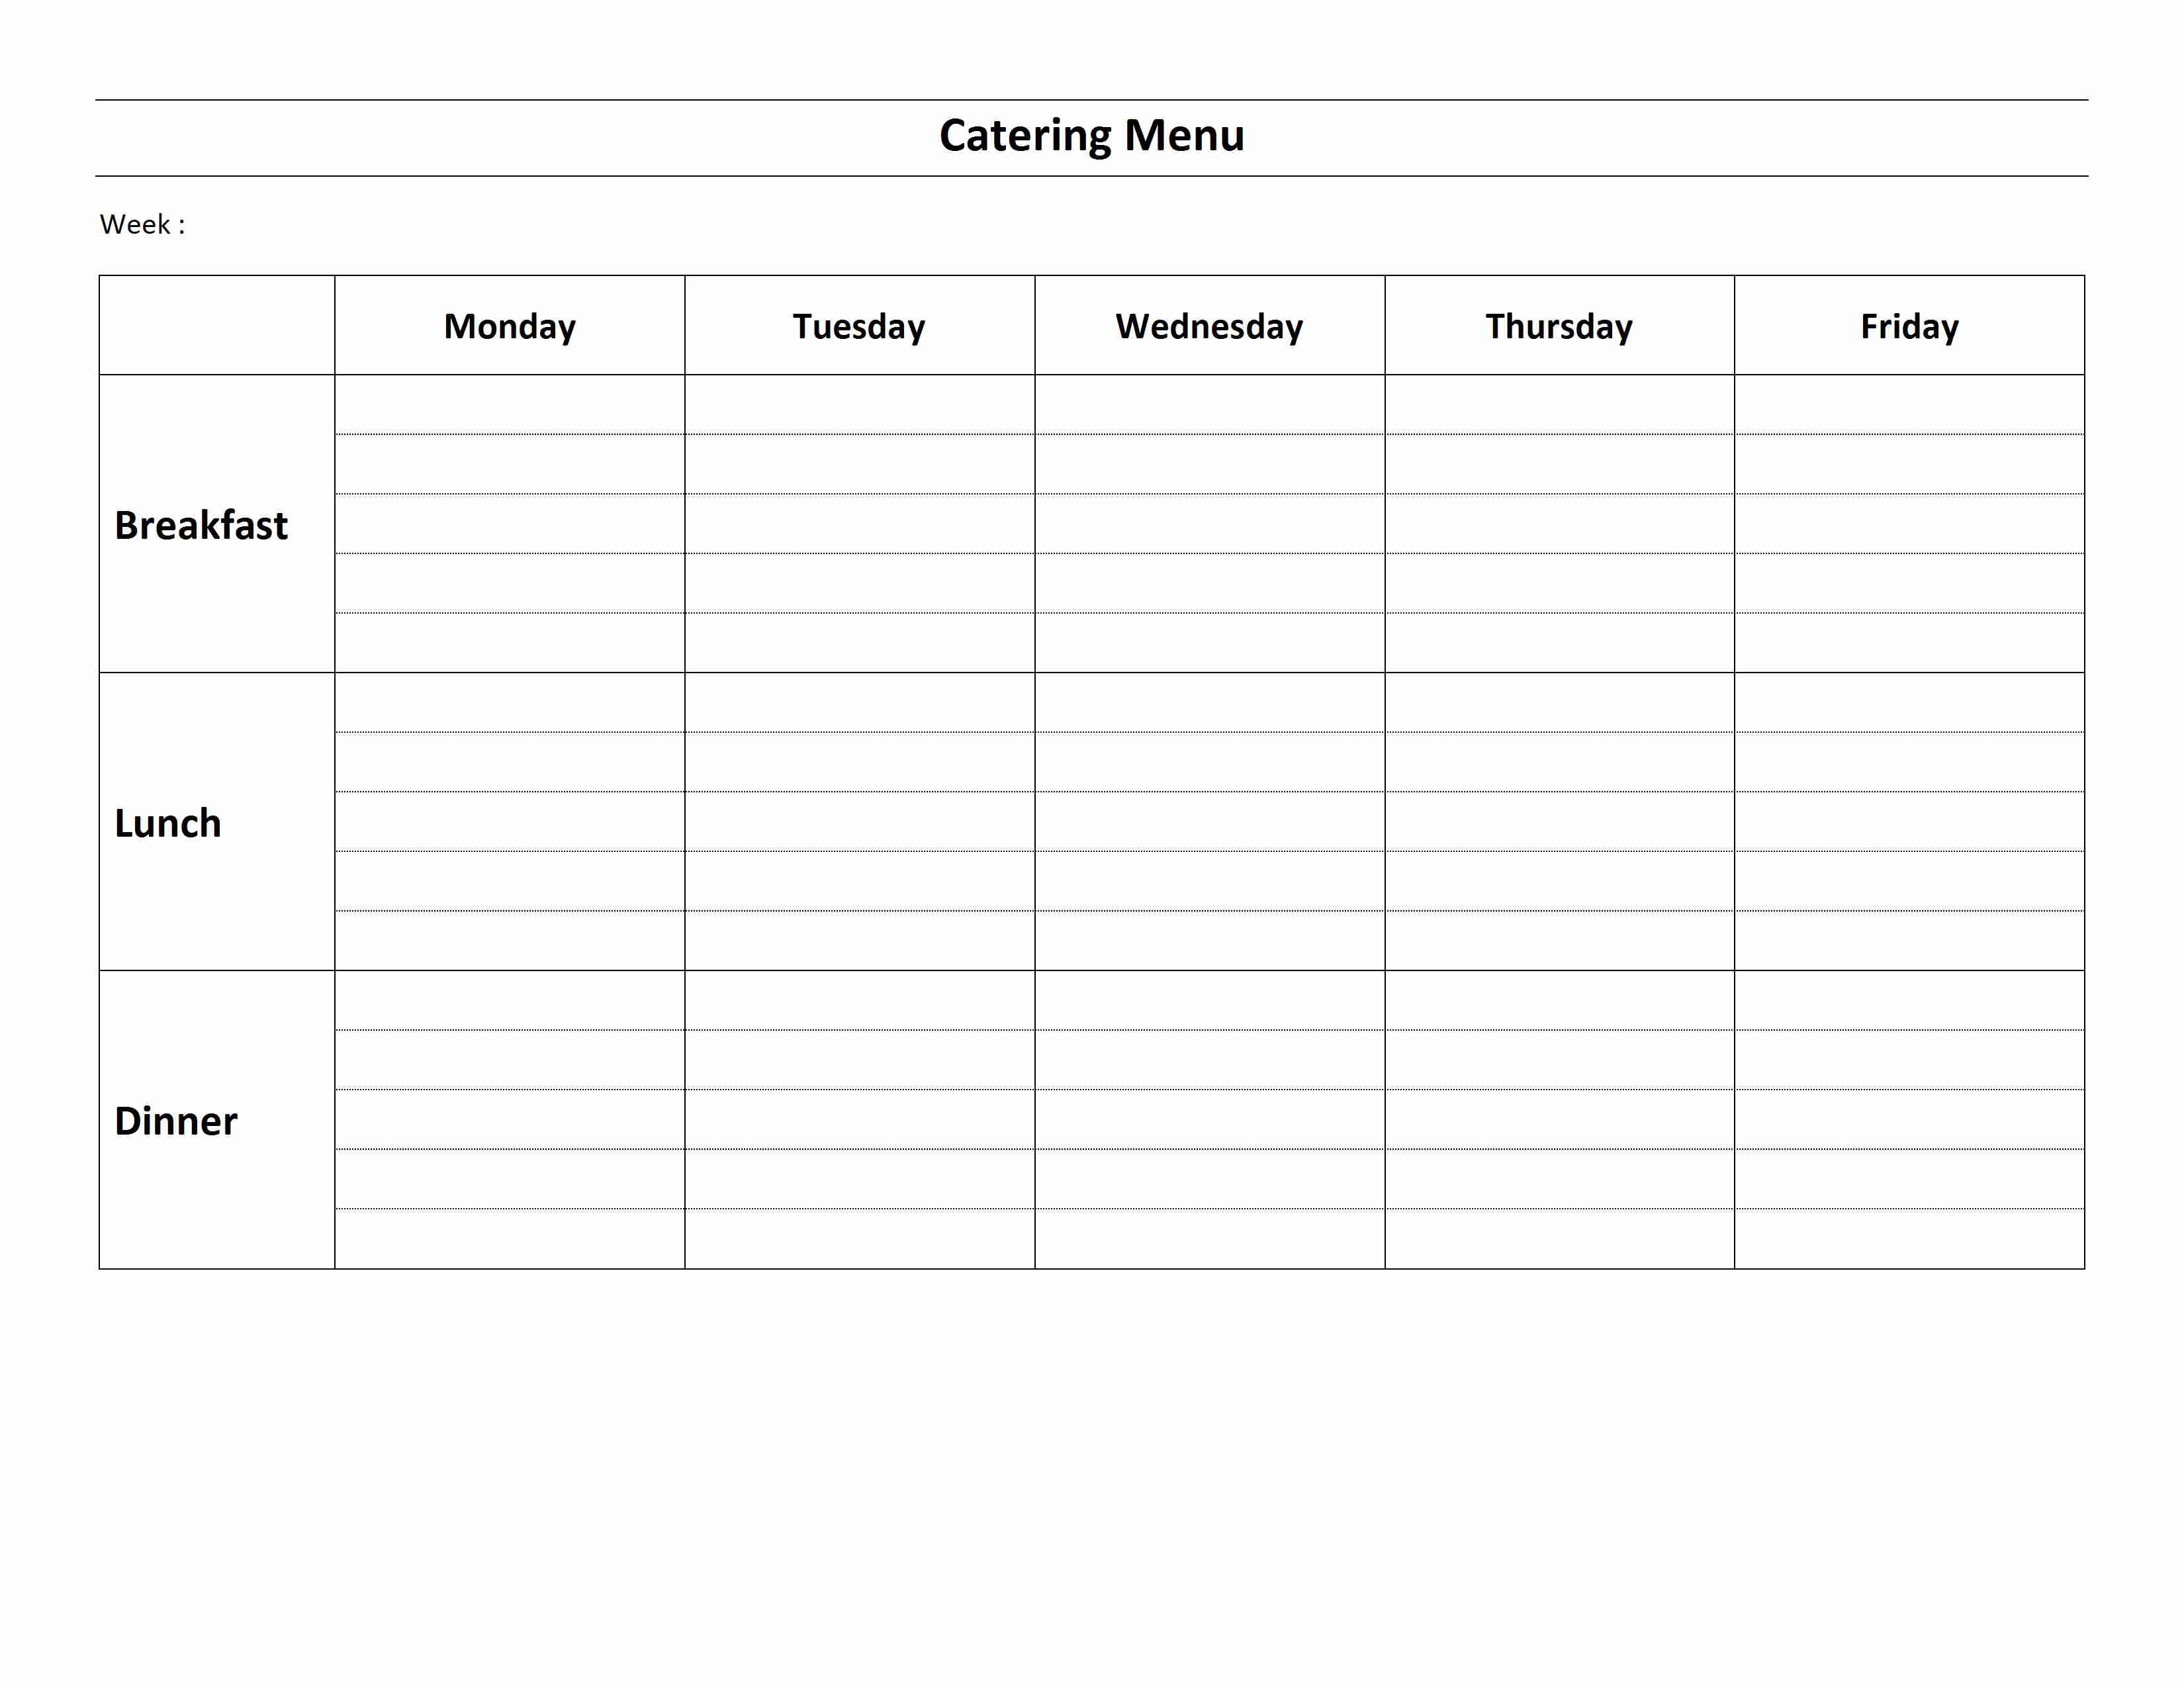 Weekly-Catering-Menu-Template-Mon-to-Fri